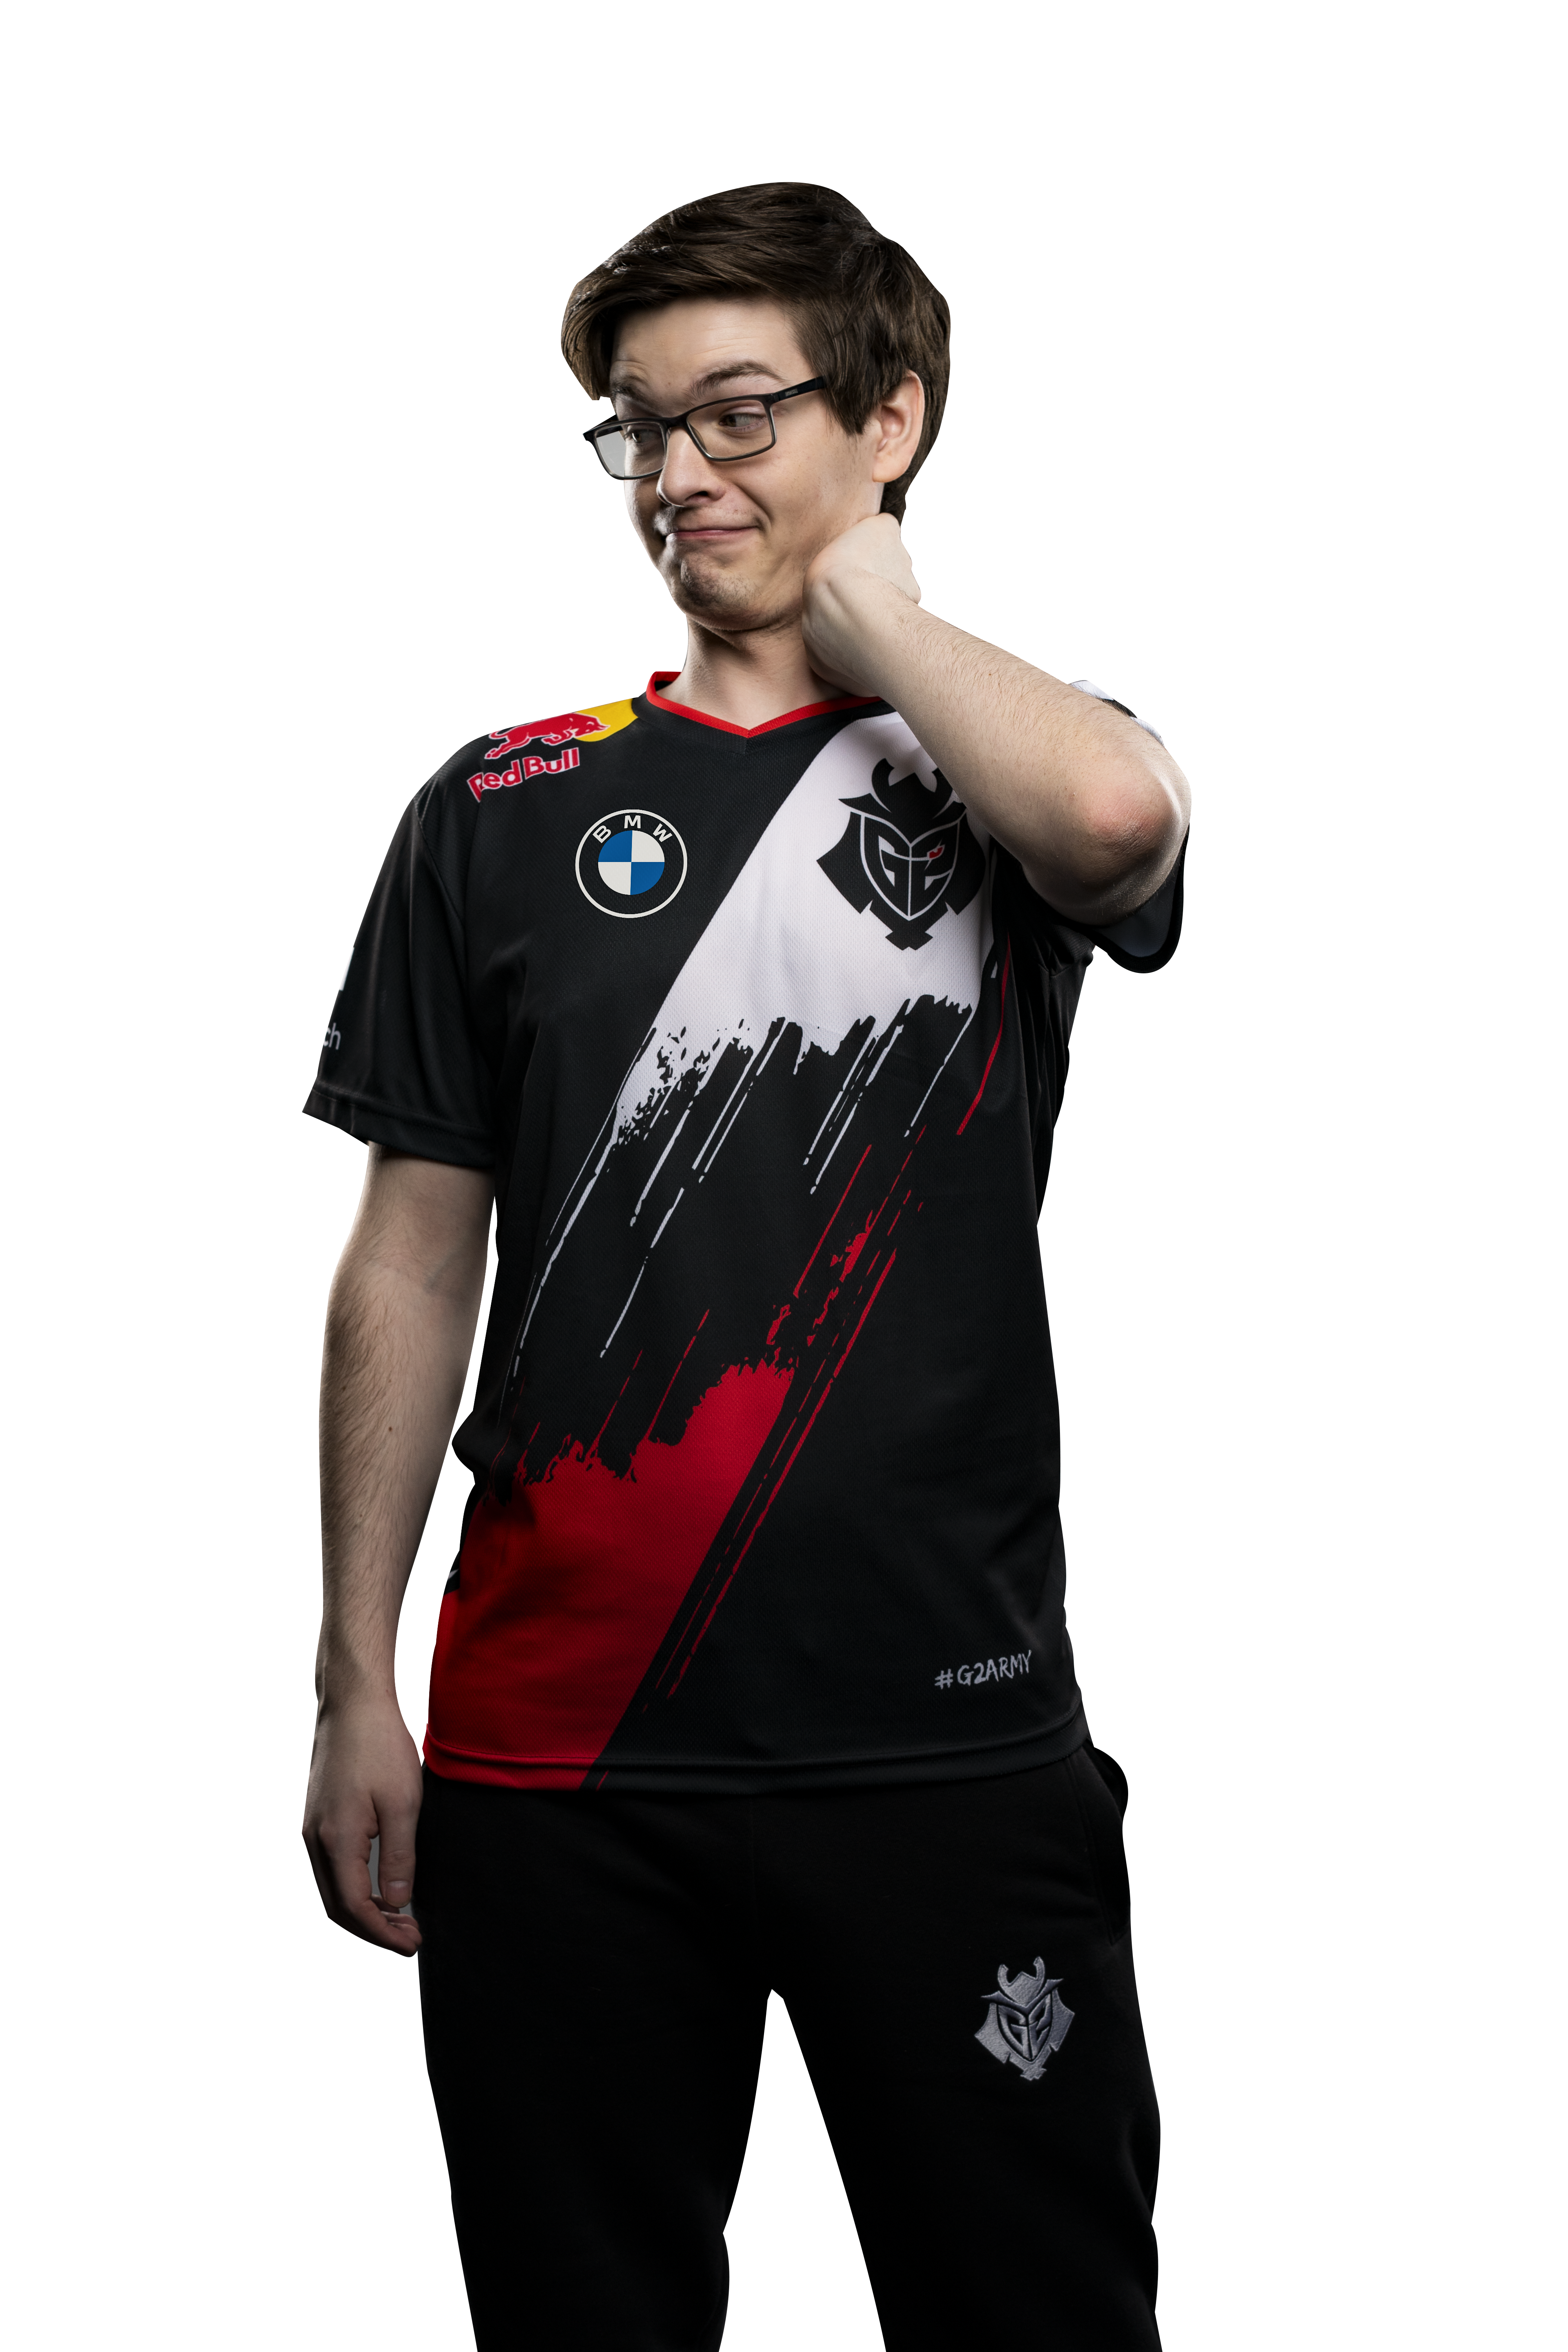 G2 Esports star Mikyx puts his arm on his neck, looking embarrassed